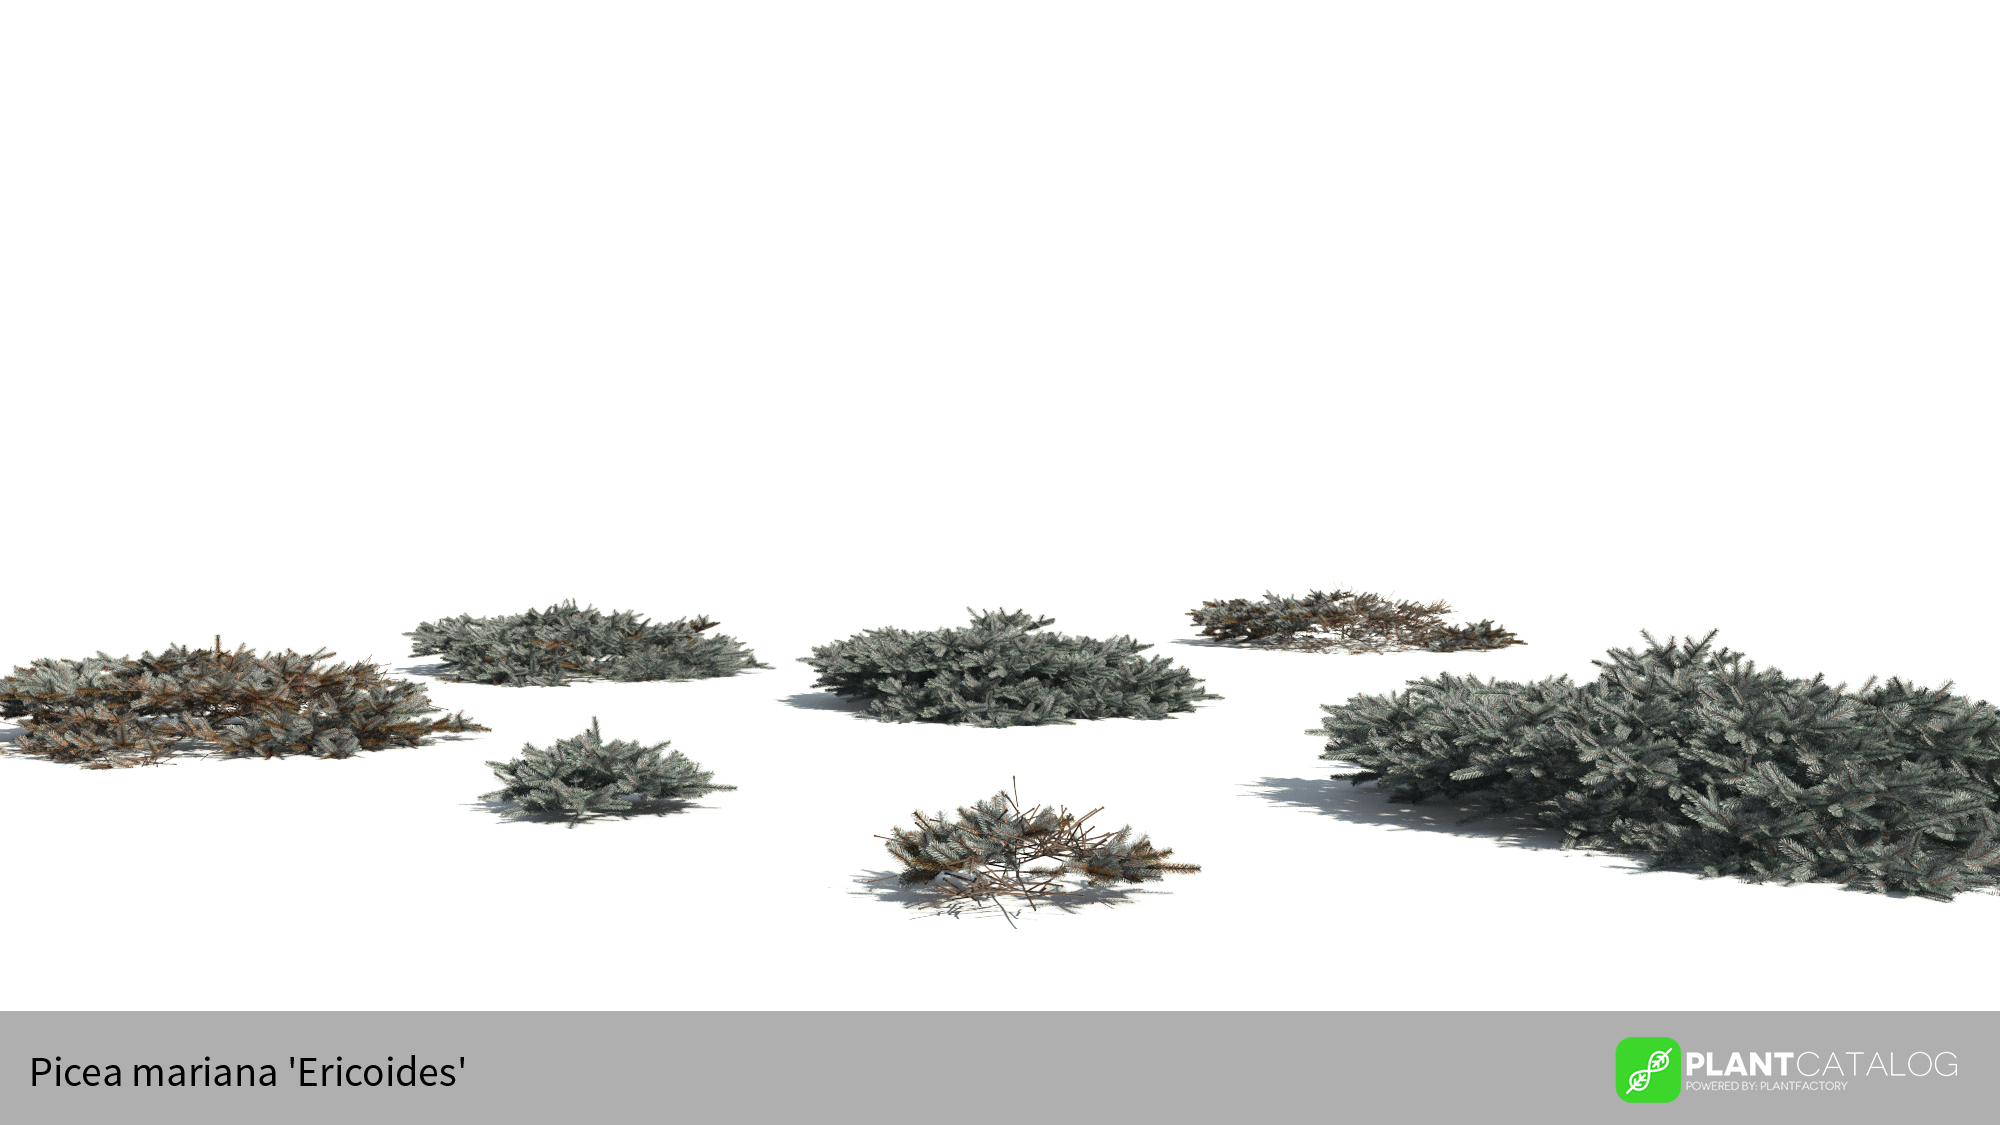 3D model of the Blue Nest spruce - Picea mariana 'Ericoides' - from the PlantCatalog, rendered in VUE